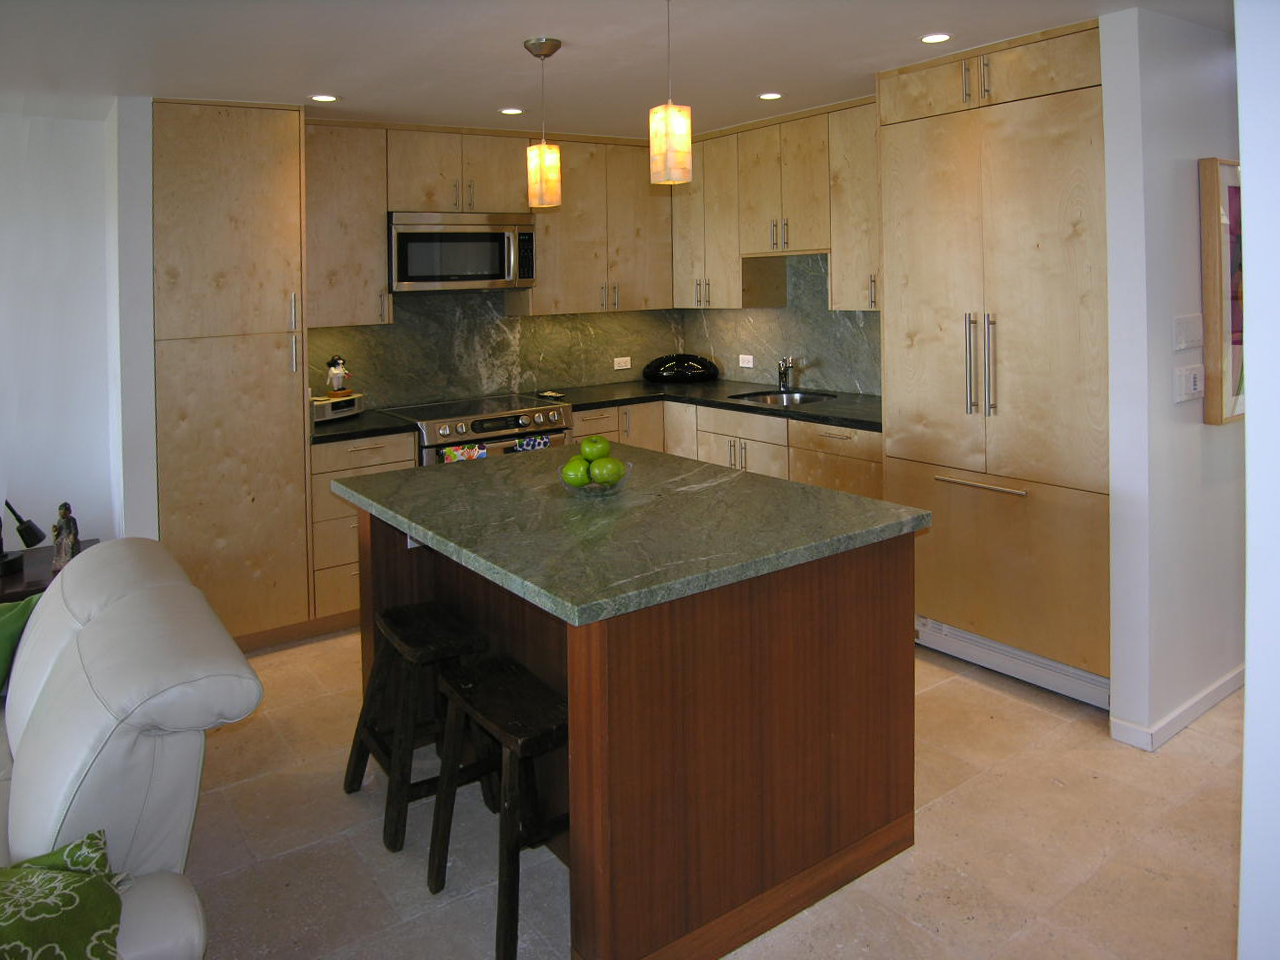 greenkitchenremodel.jpg